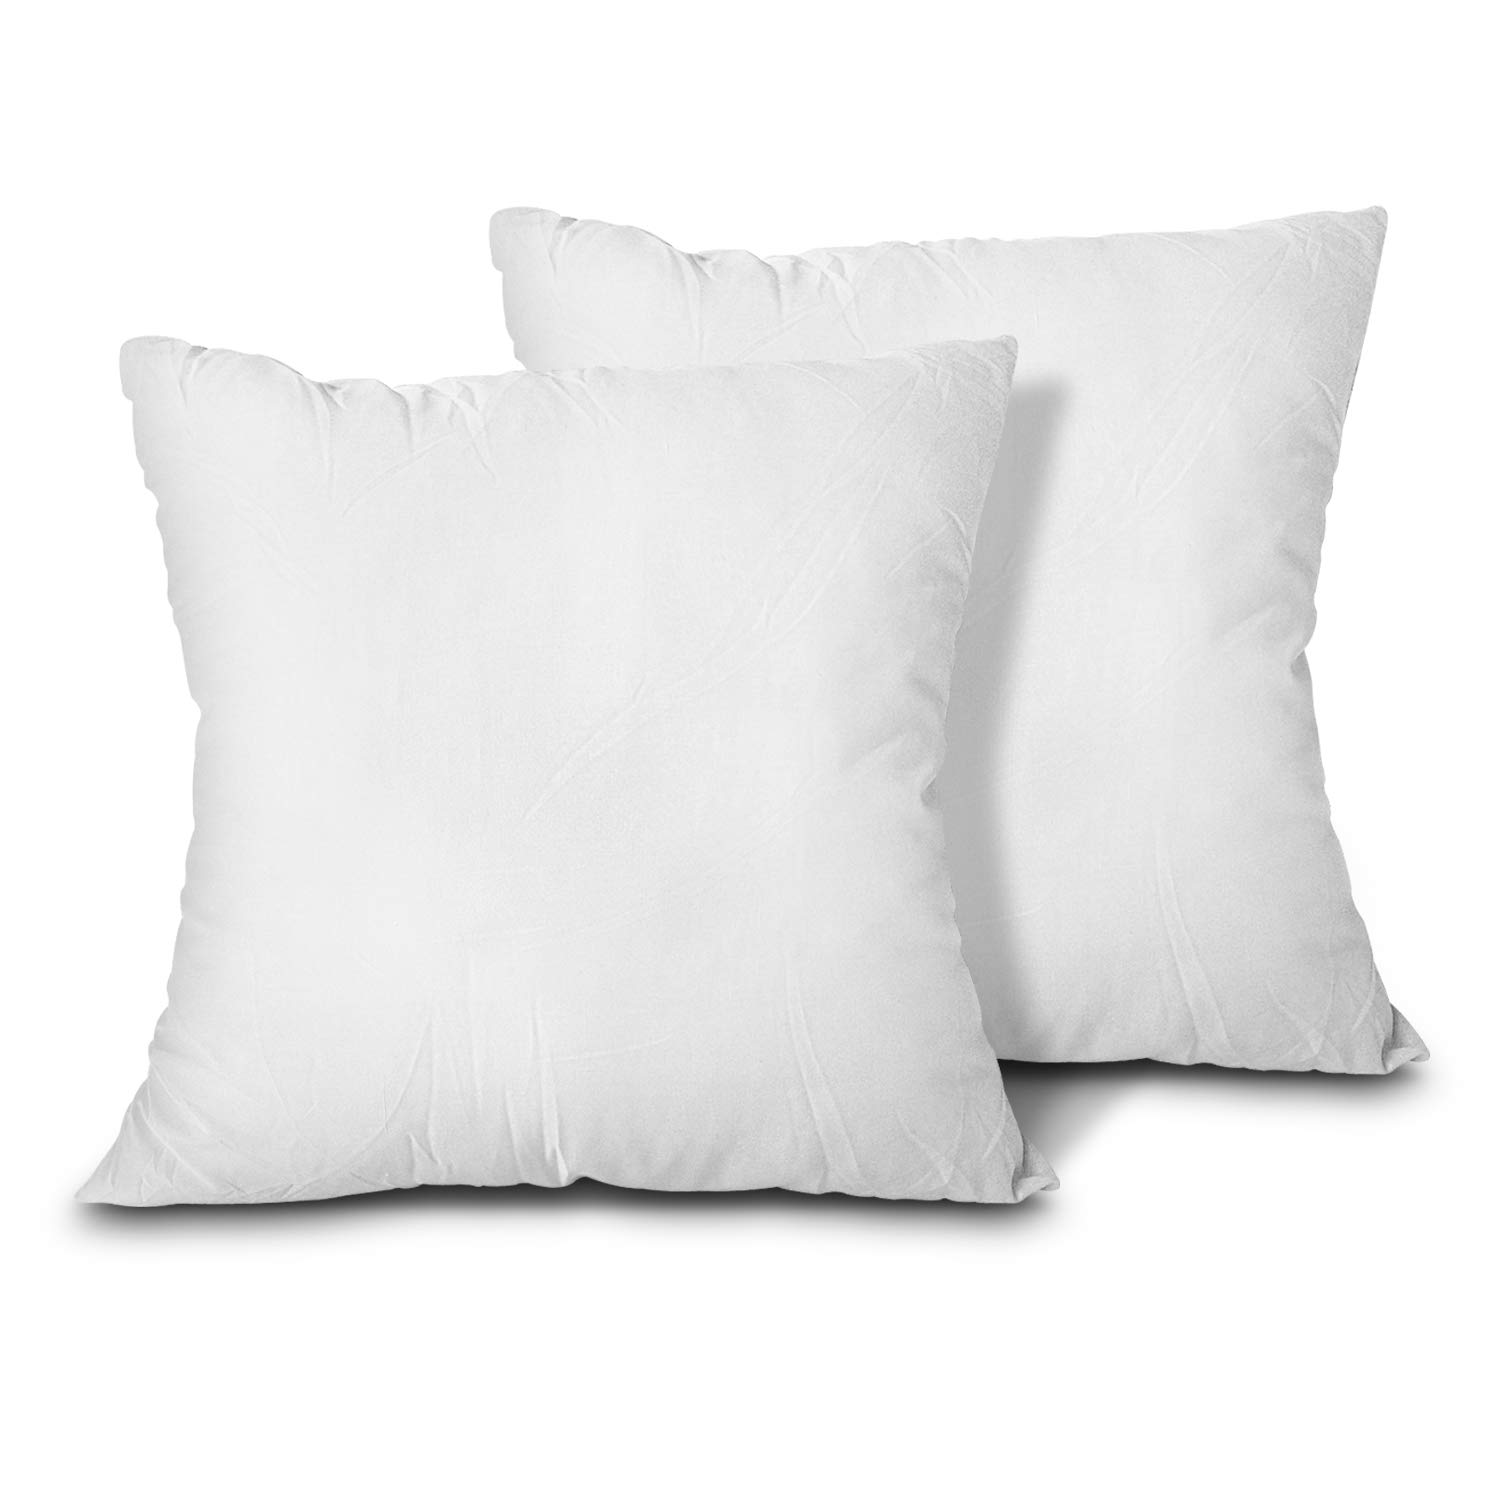 EDOW Throw Pillow Inserts, Set of 2 Lightweight Down Alternative Polyester Pillow, Couch Cushion, Sham Stuffer, Machine Washable. (White, 12x12)